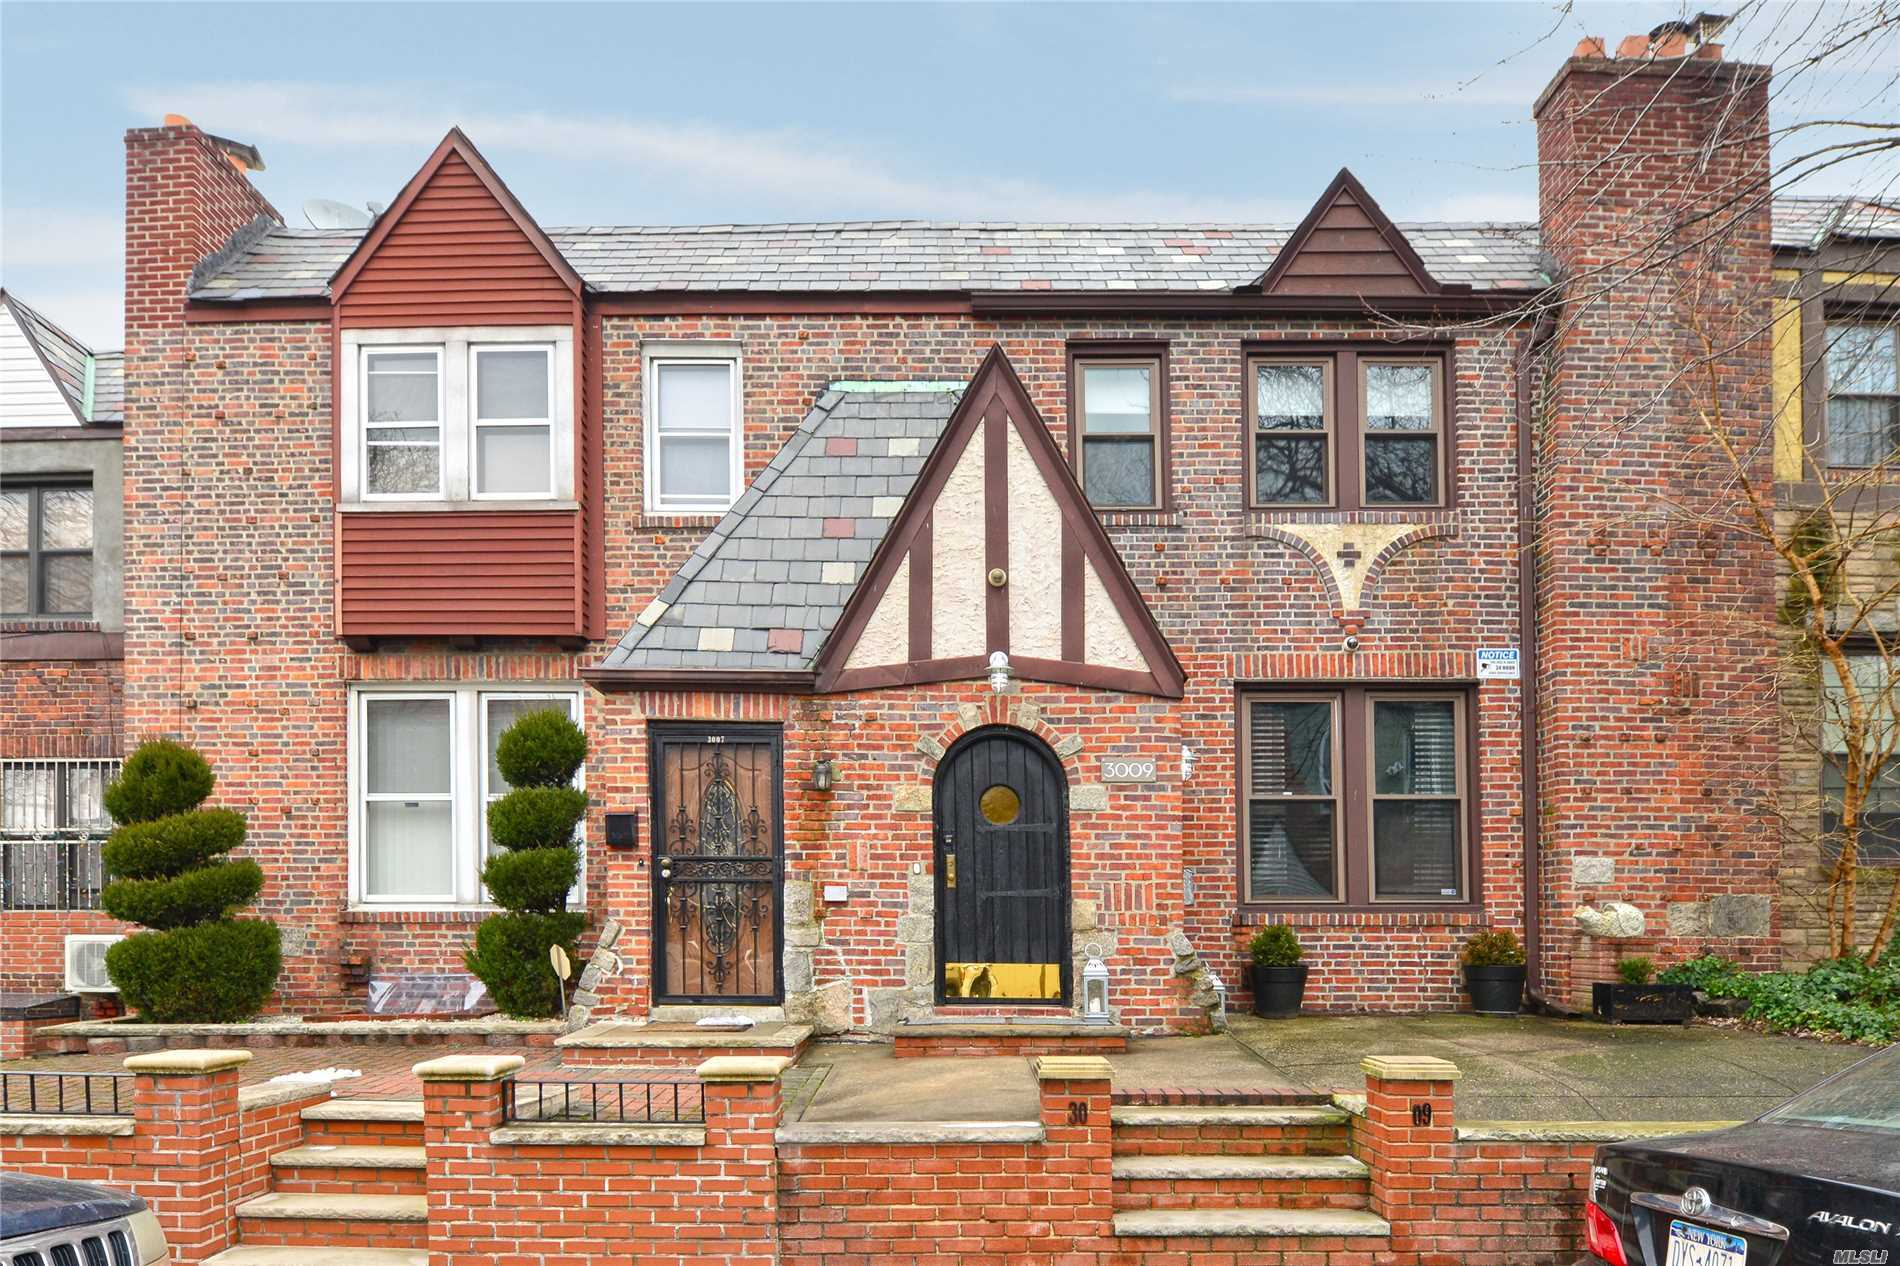 Just Arrived- Charming And Well Maintained Tudor Style Hone On A Great Block. Close To La Guardia Airport , Major Highways, Easy To Commute To The City Transportation Near To Shopping Areas Schools, Minutes Away From Flushing Meadows Corona Park And Citi Field !! Won't Last!